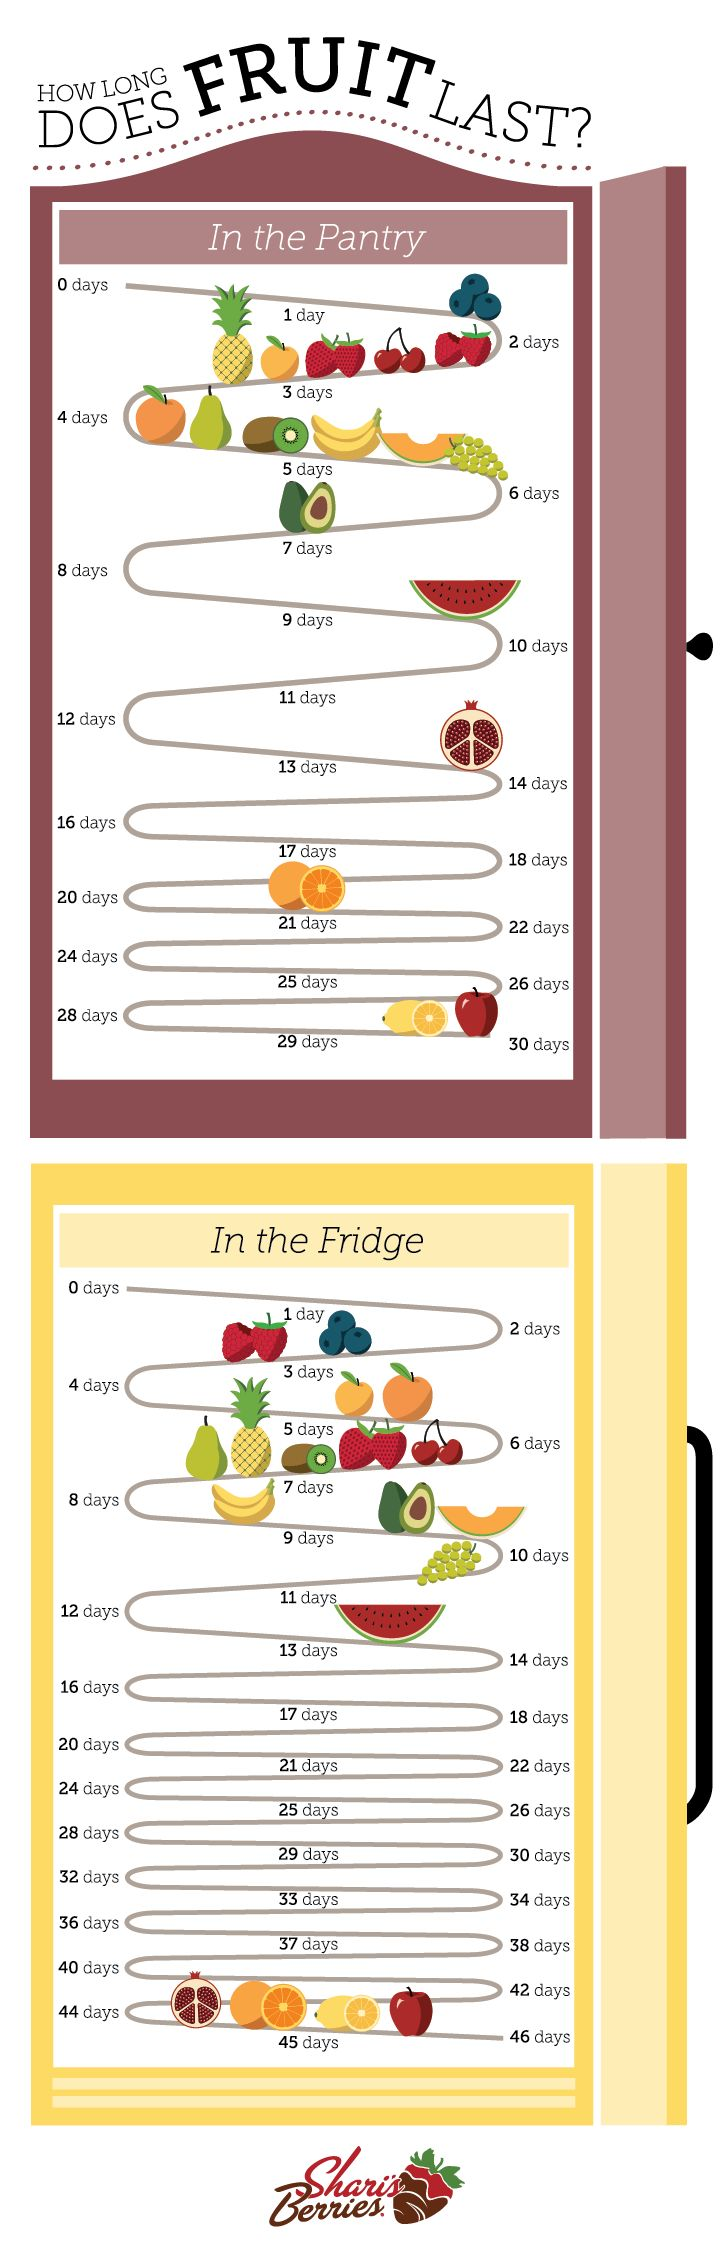 How Long Does Fruit Last? - Wondering if your apples and apricots are still good? It's not always easy to tell. Depending on the fruit, you may have a month or only a few days to enjoy it, especially if they're left in a bowl in the pantry. Chilling your fruits in the fridge can certainly extend their shelf life, but some last longer than others. This chart has all the details.